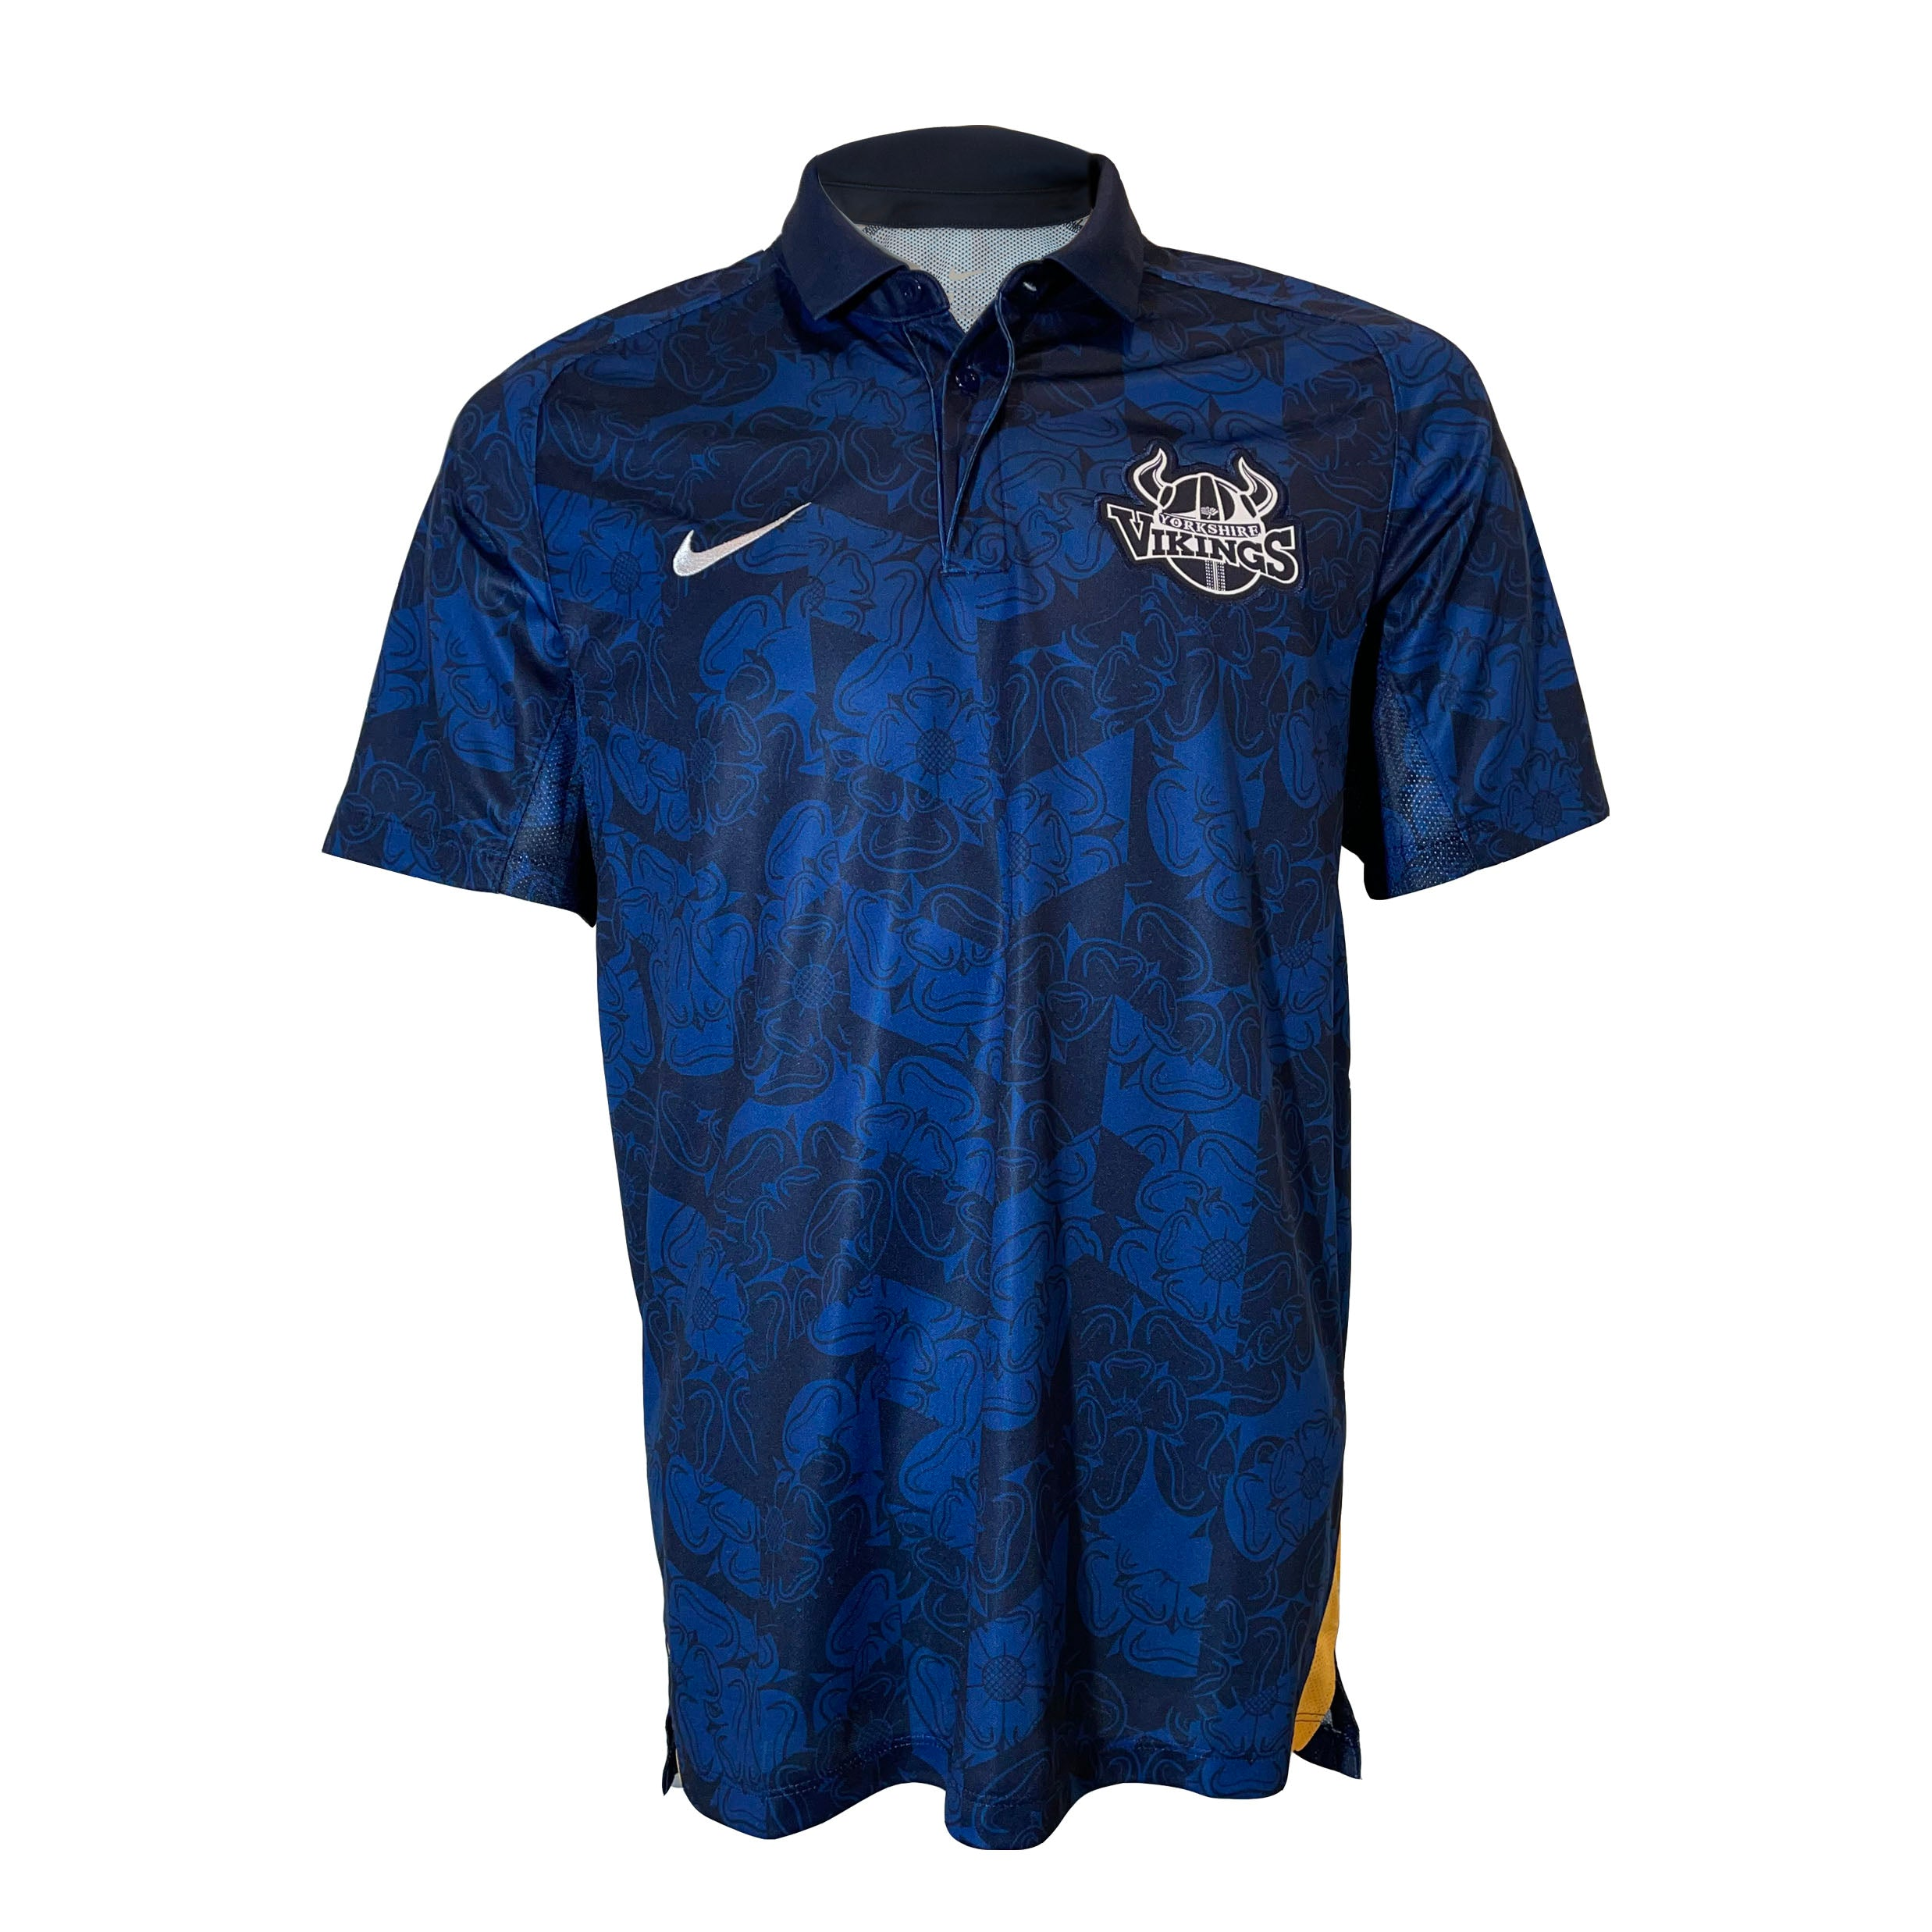 Nike Yorkshire Vikings One-Day Replica Shirt 2021